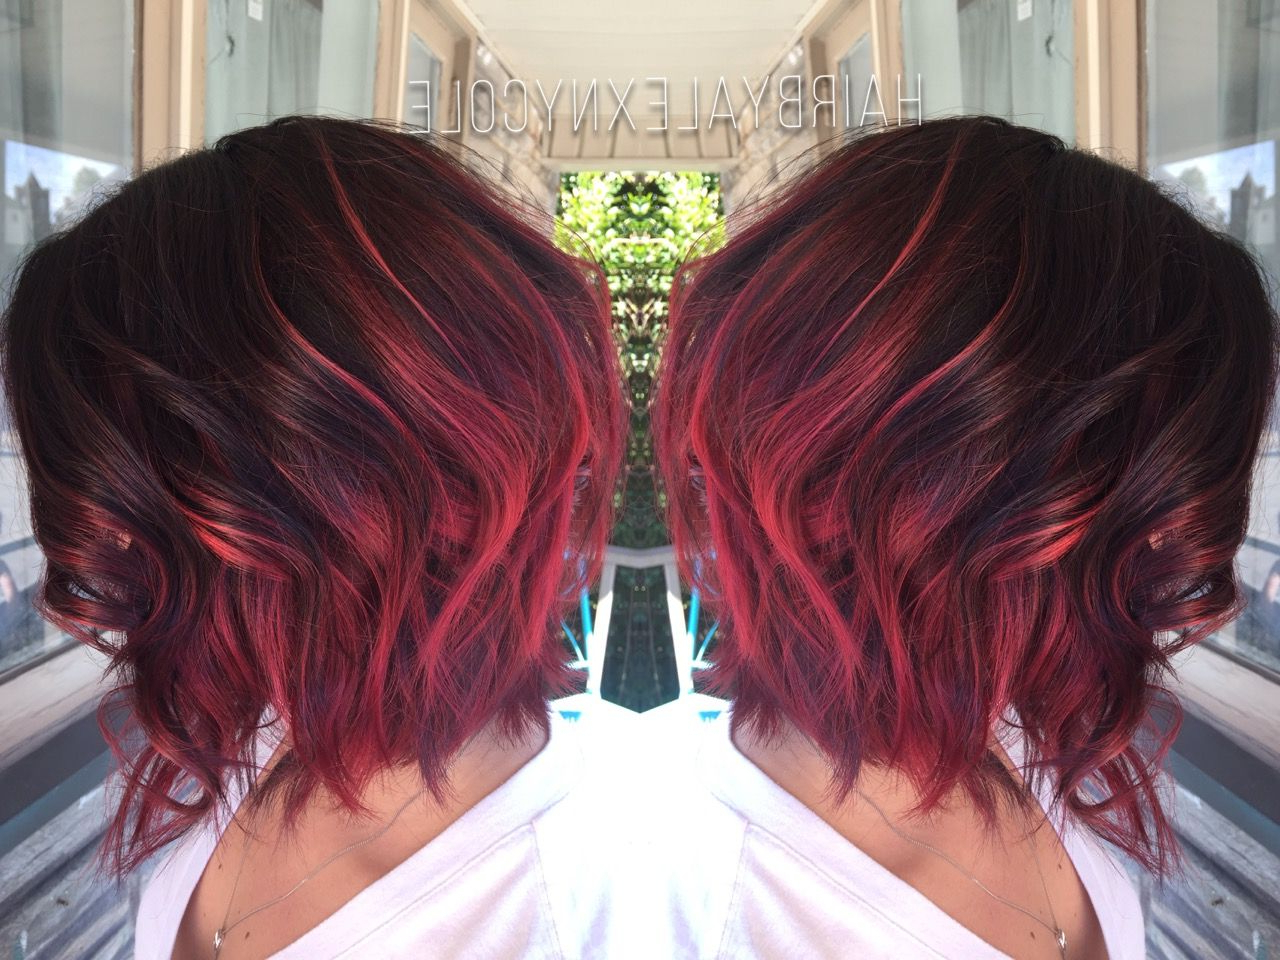 Pinadriana Mckenzi On Short Hairstyles In 2018 | Pinterest Pertaining To Stacked Black Bobhairstyles With Cherry Balayage (View 7 of 20)